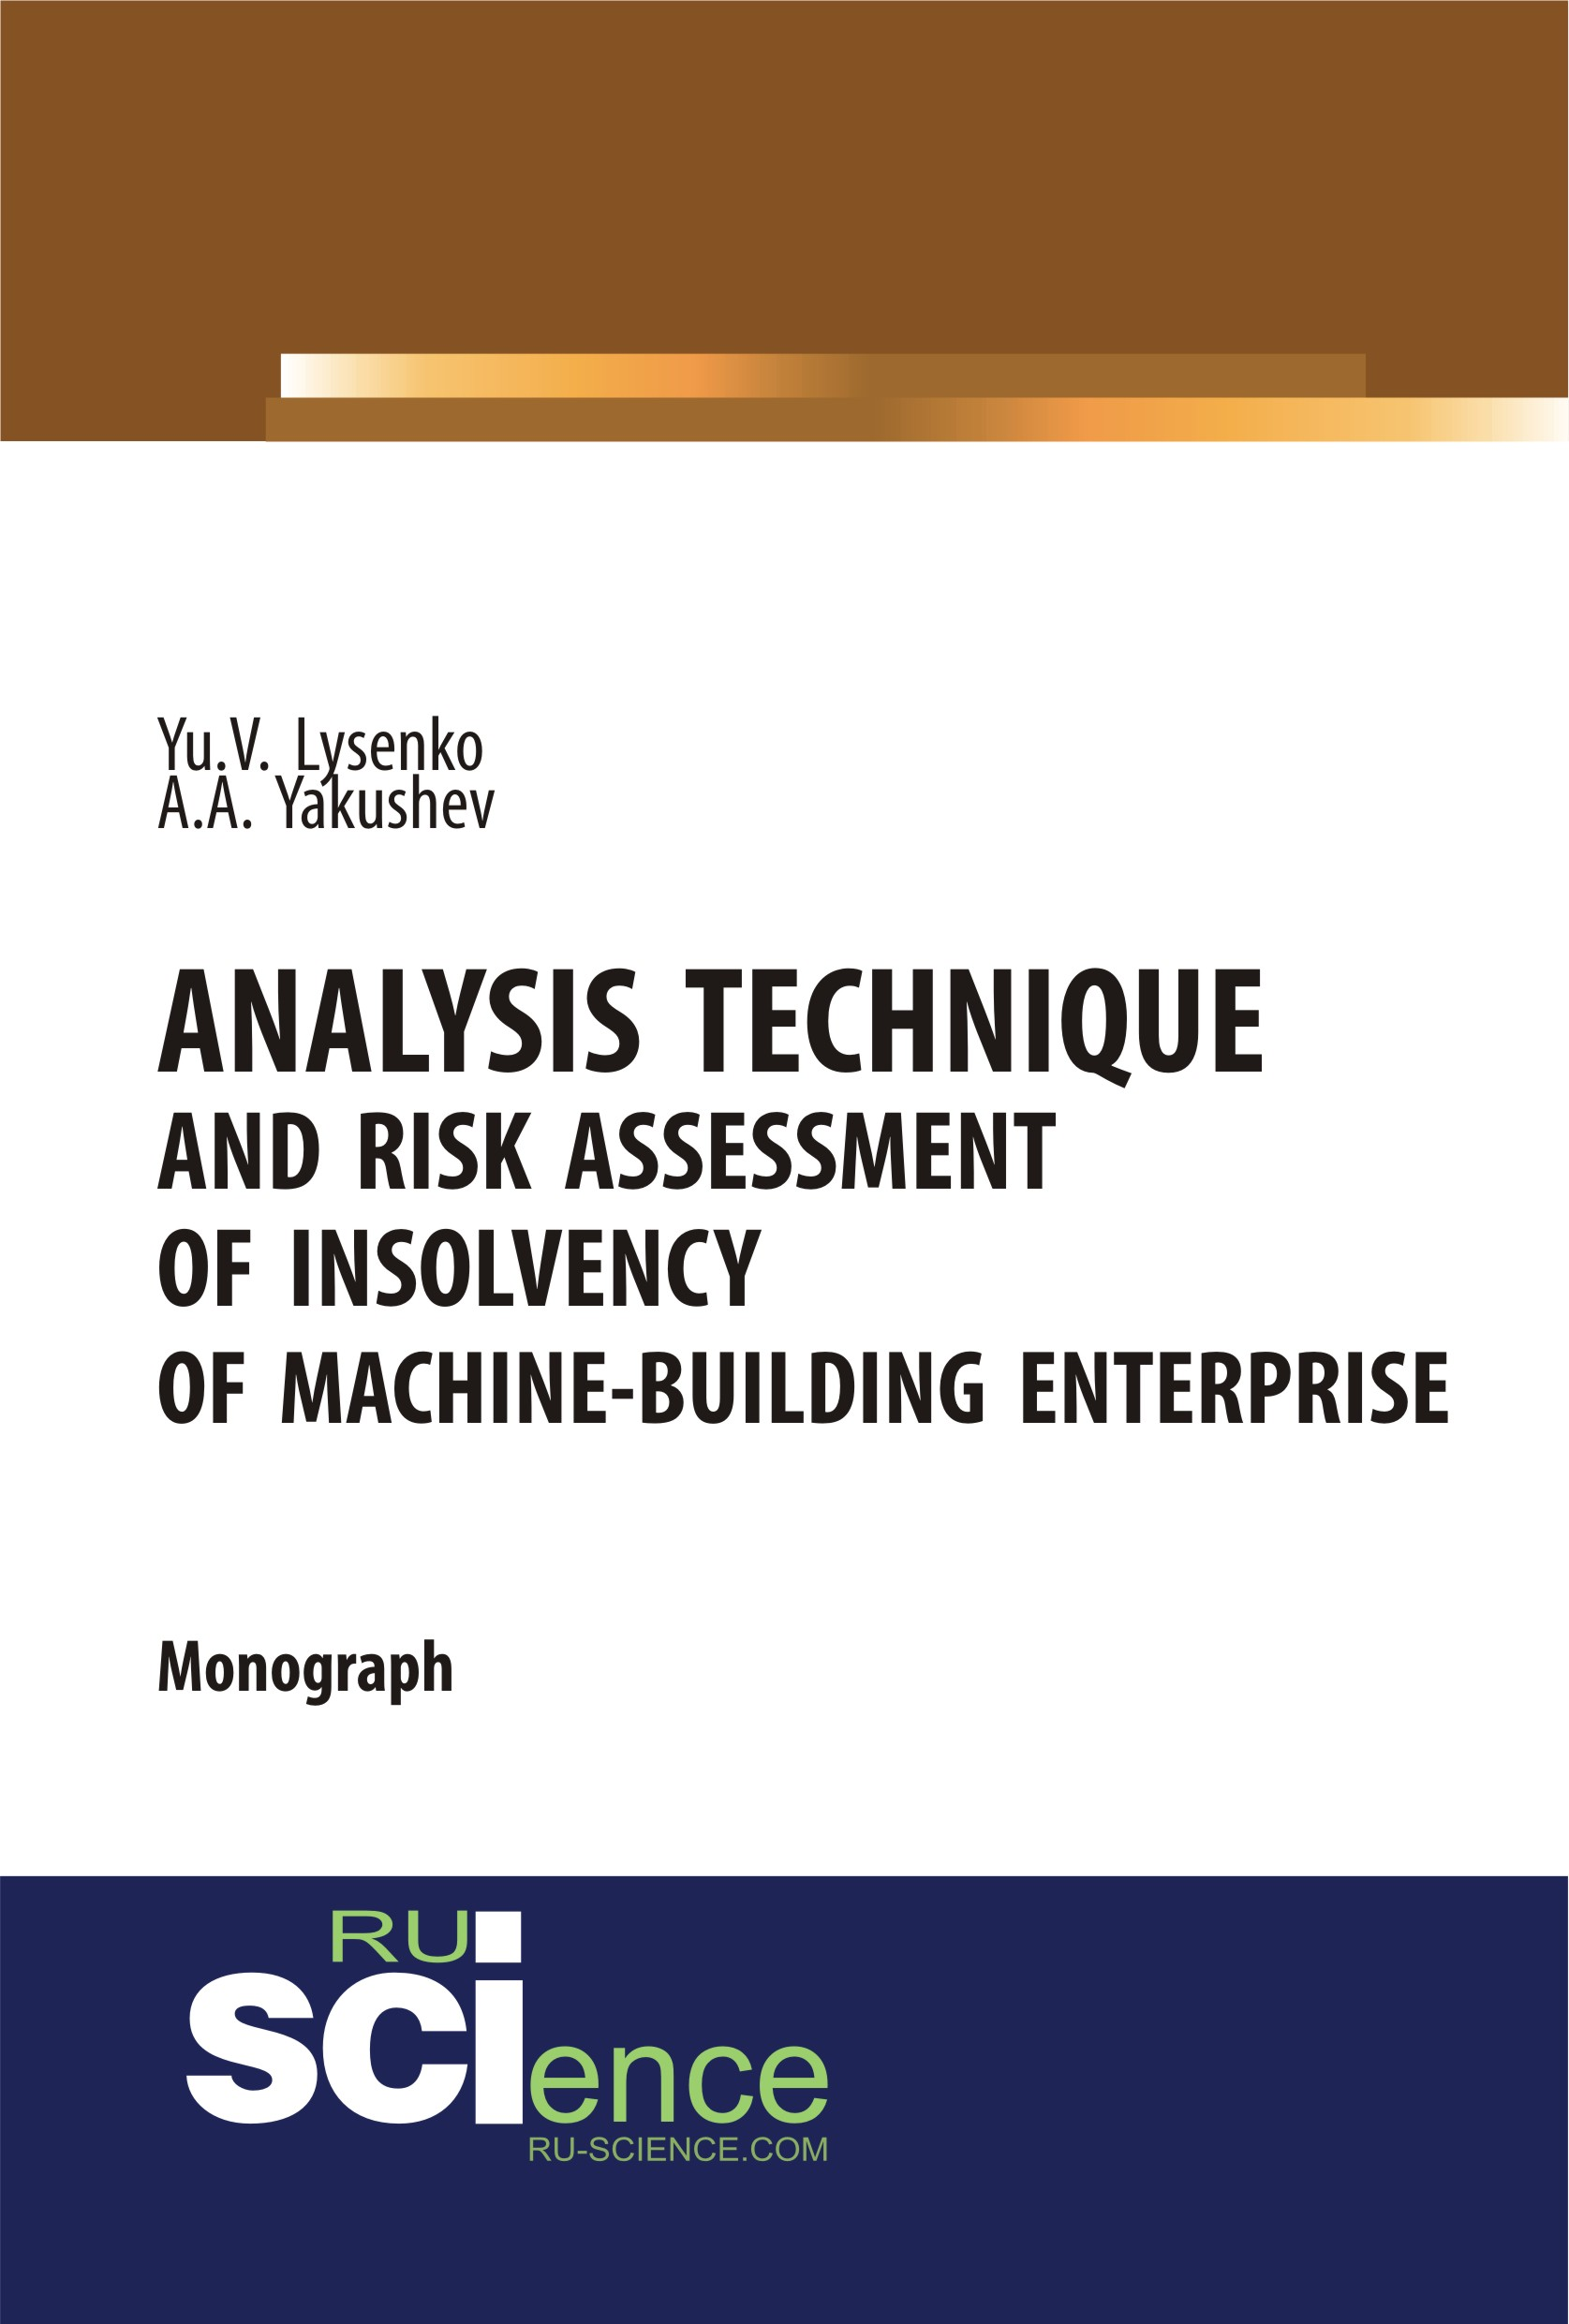 Ю. В. Лысенко Analysis technique and risk assessment of insolvency of machine-building enterprise role of agnors analysis in urine cytology